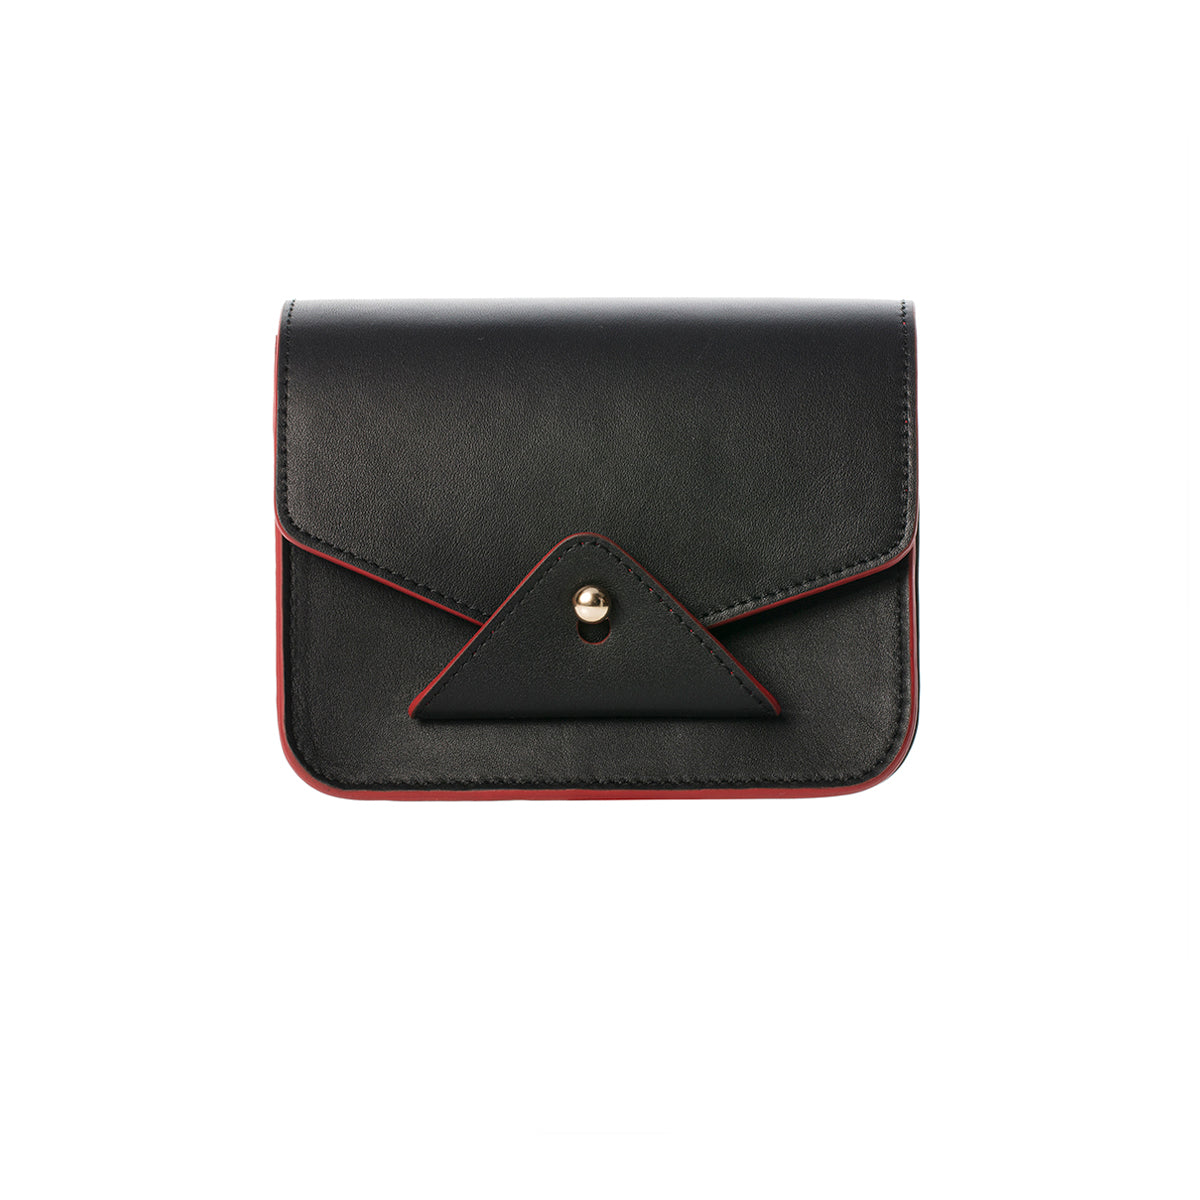 FIDI Black-red Leather Crossbody